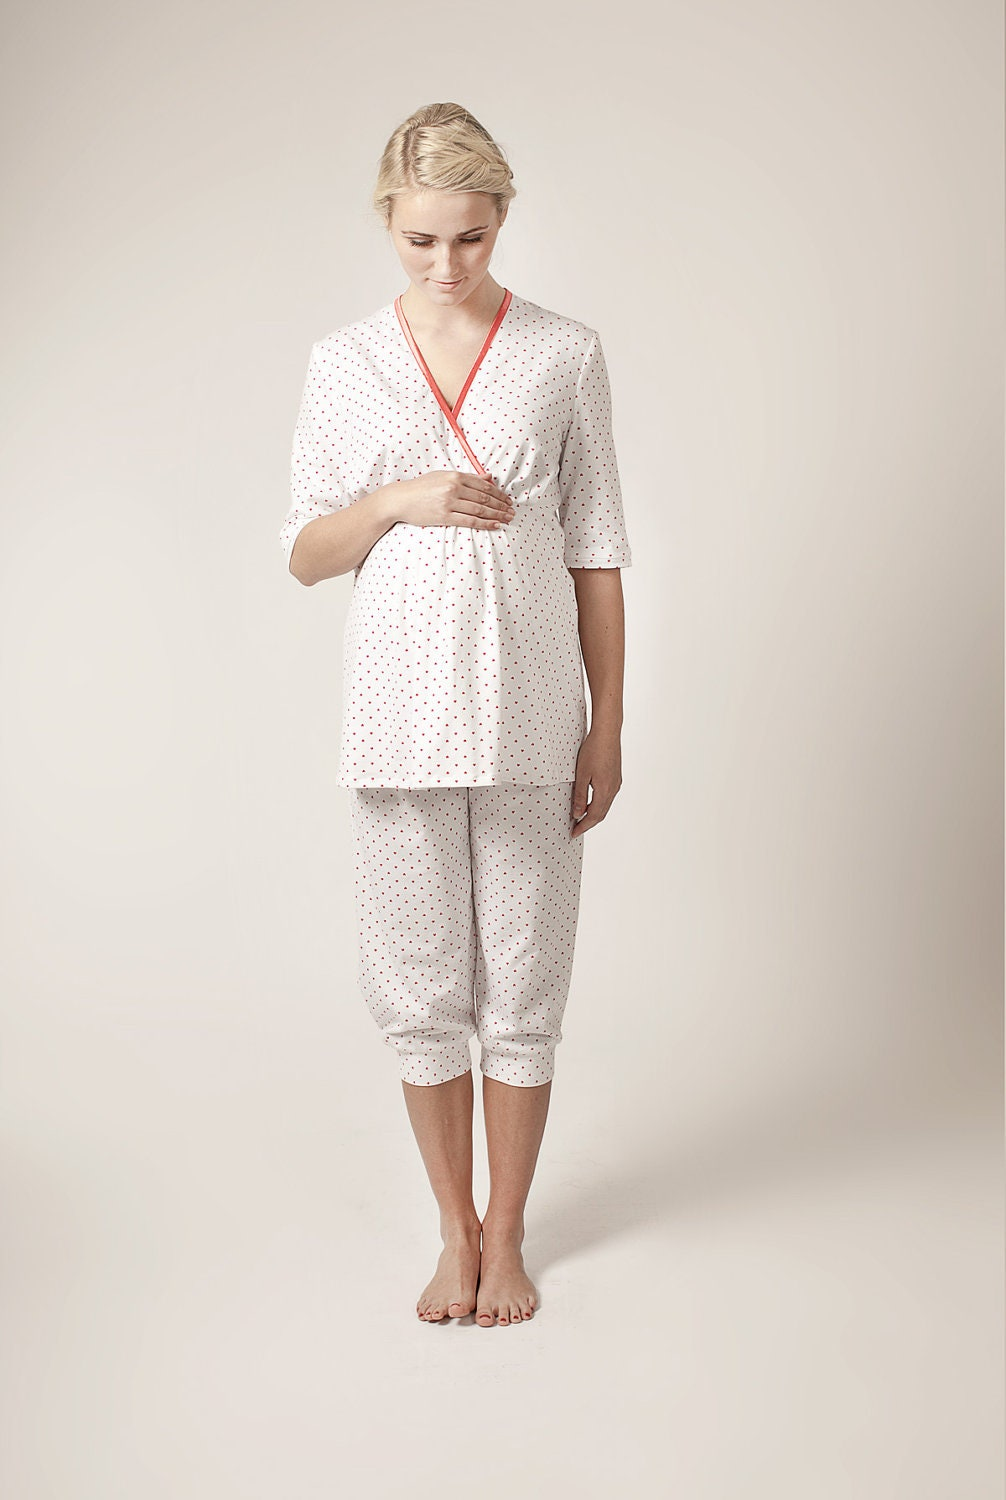 Maternity cotton nightwear (ONLY S, M LEFT) - alicebmaternity